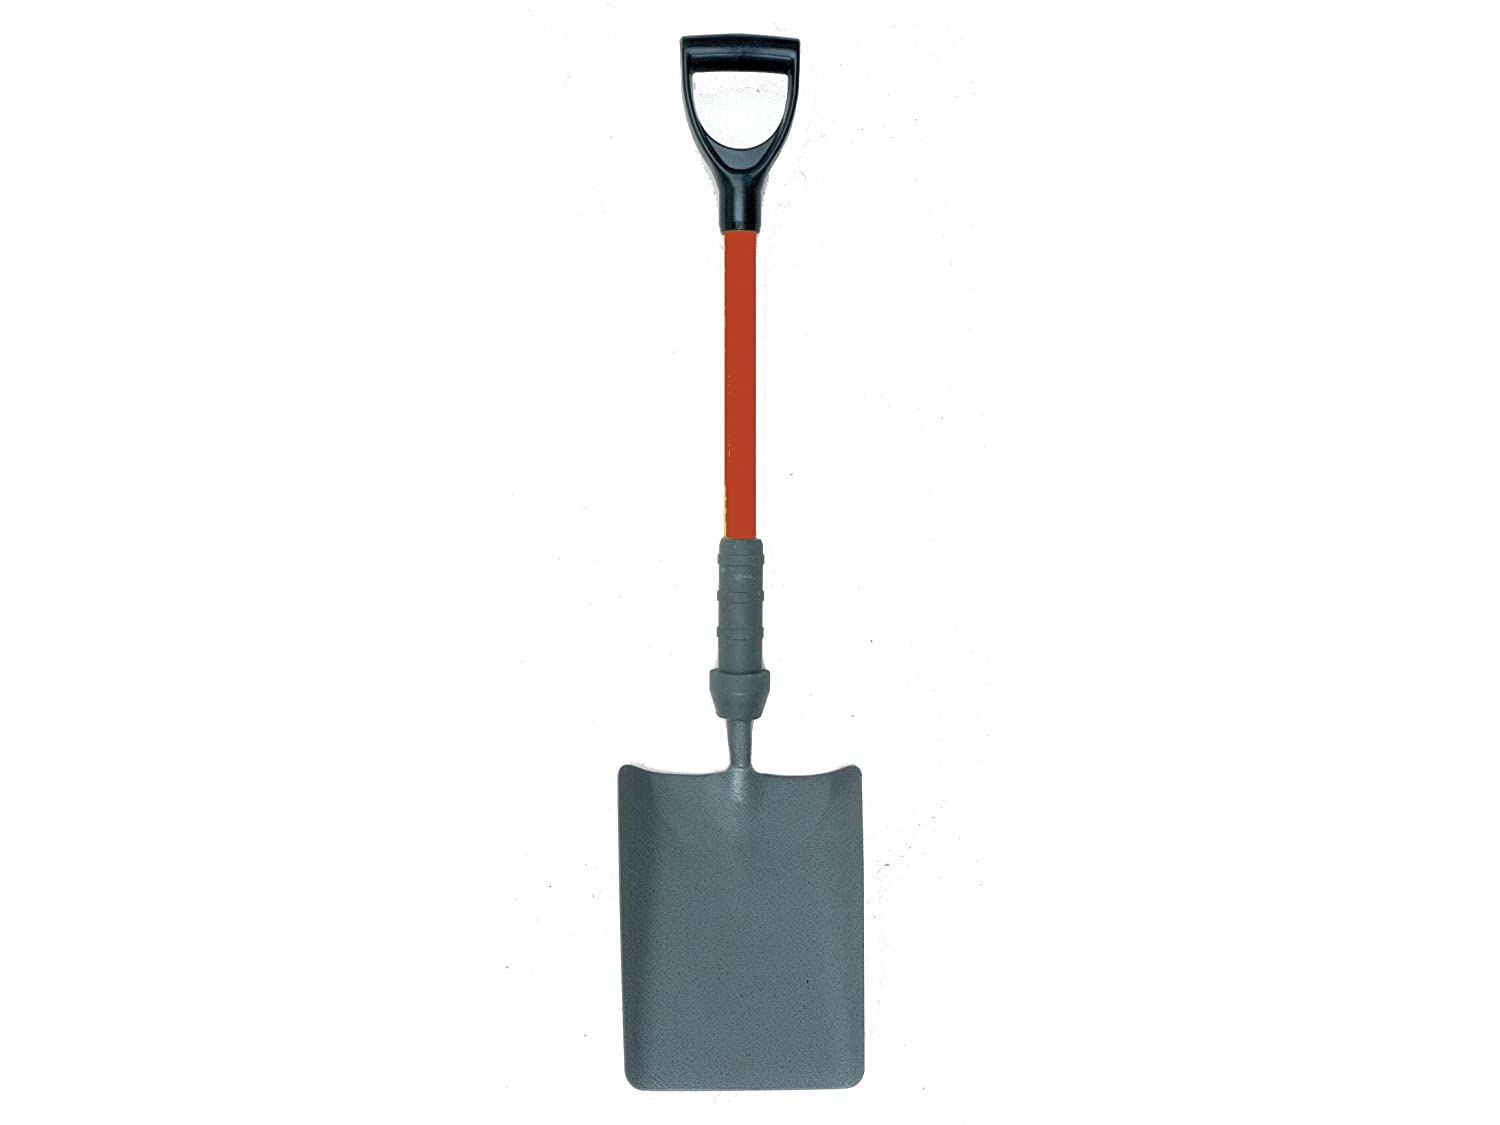 Bulldog 5TM2IN Premier Insulated Taper Mouth Shovel BUL5TM2IN